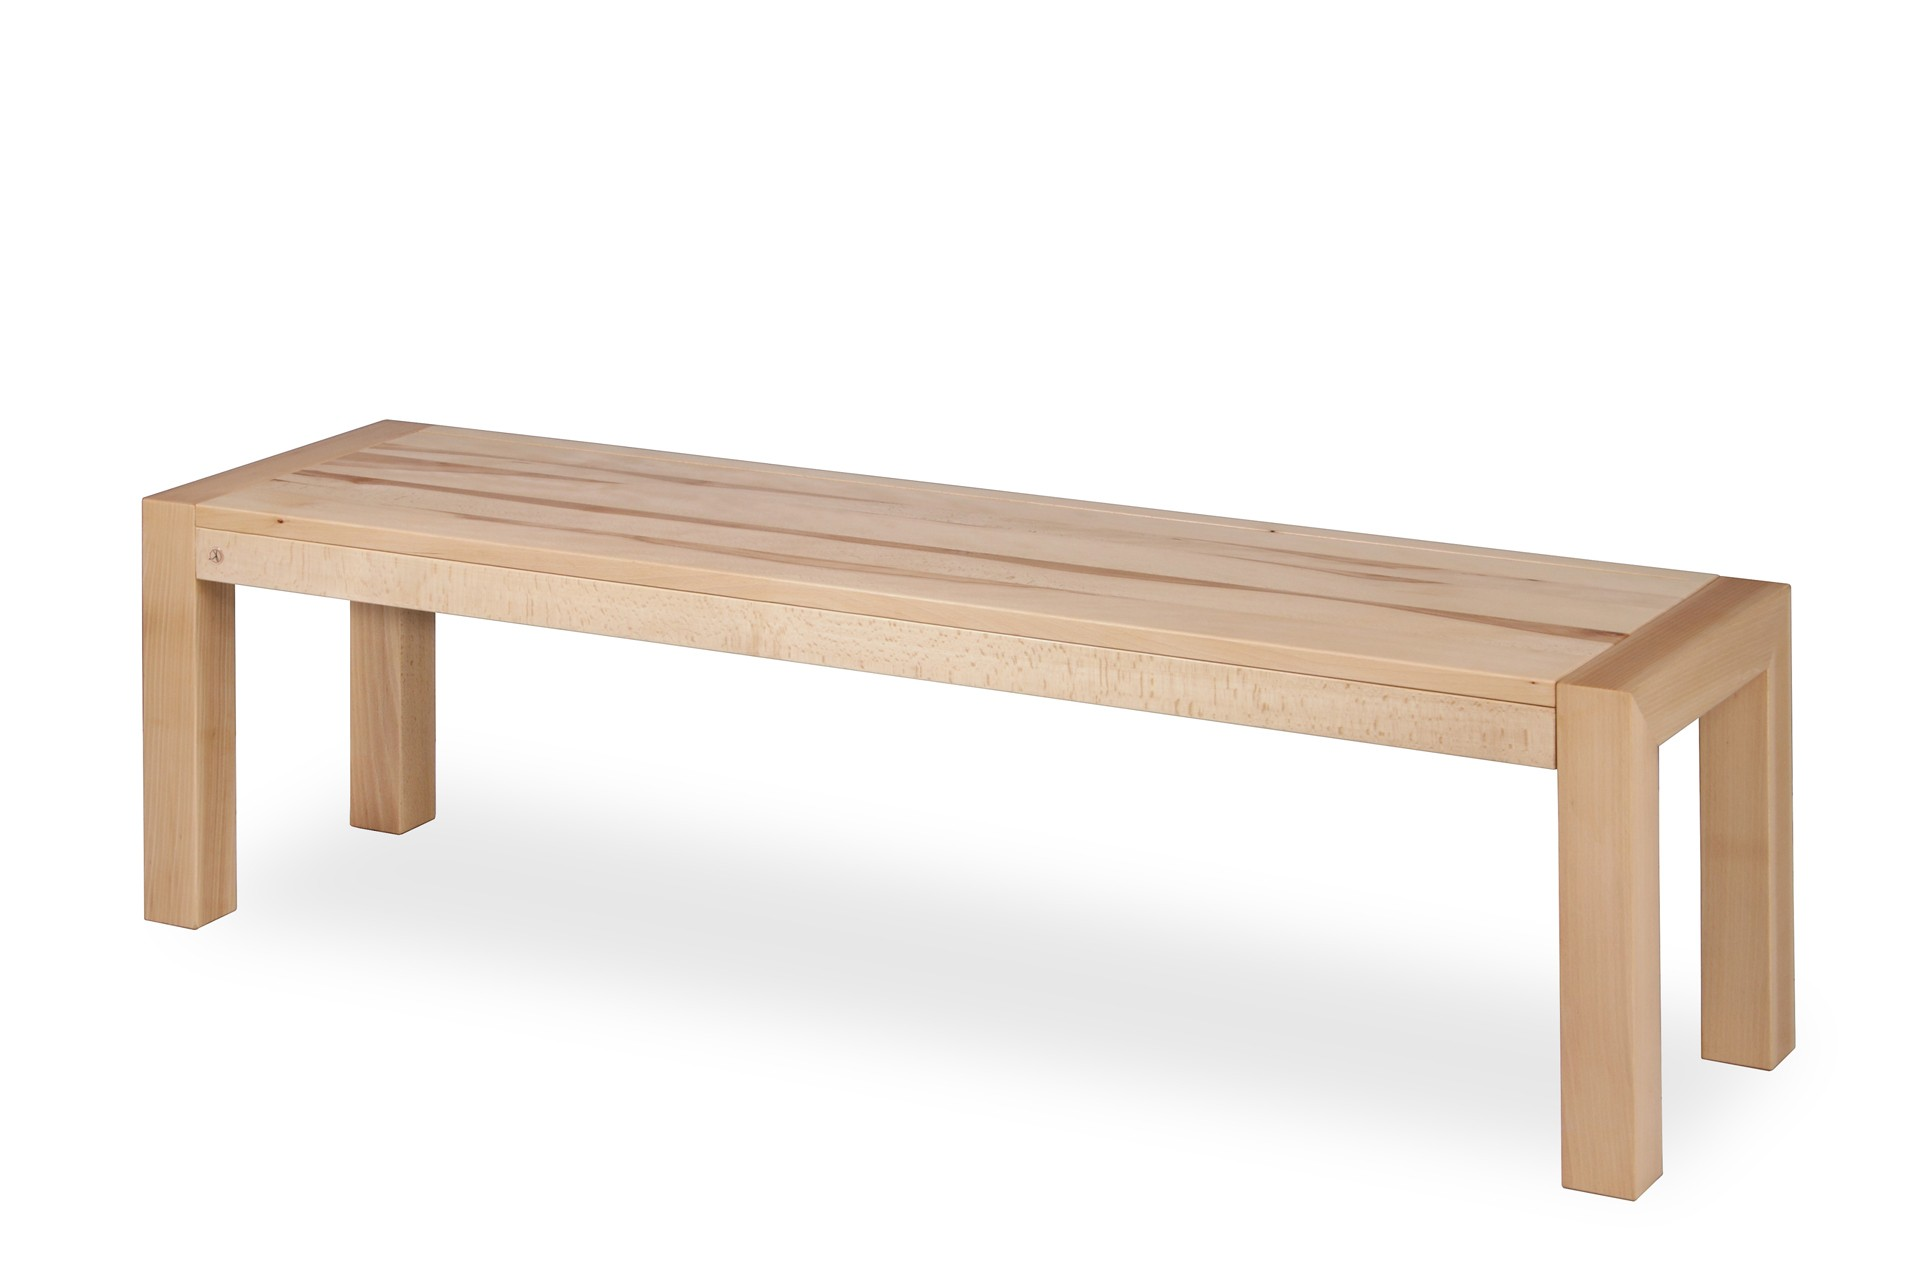 LIBRA BENCH wholly wooden